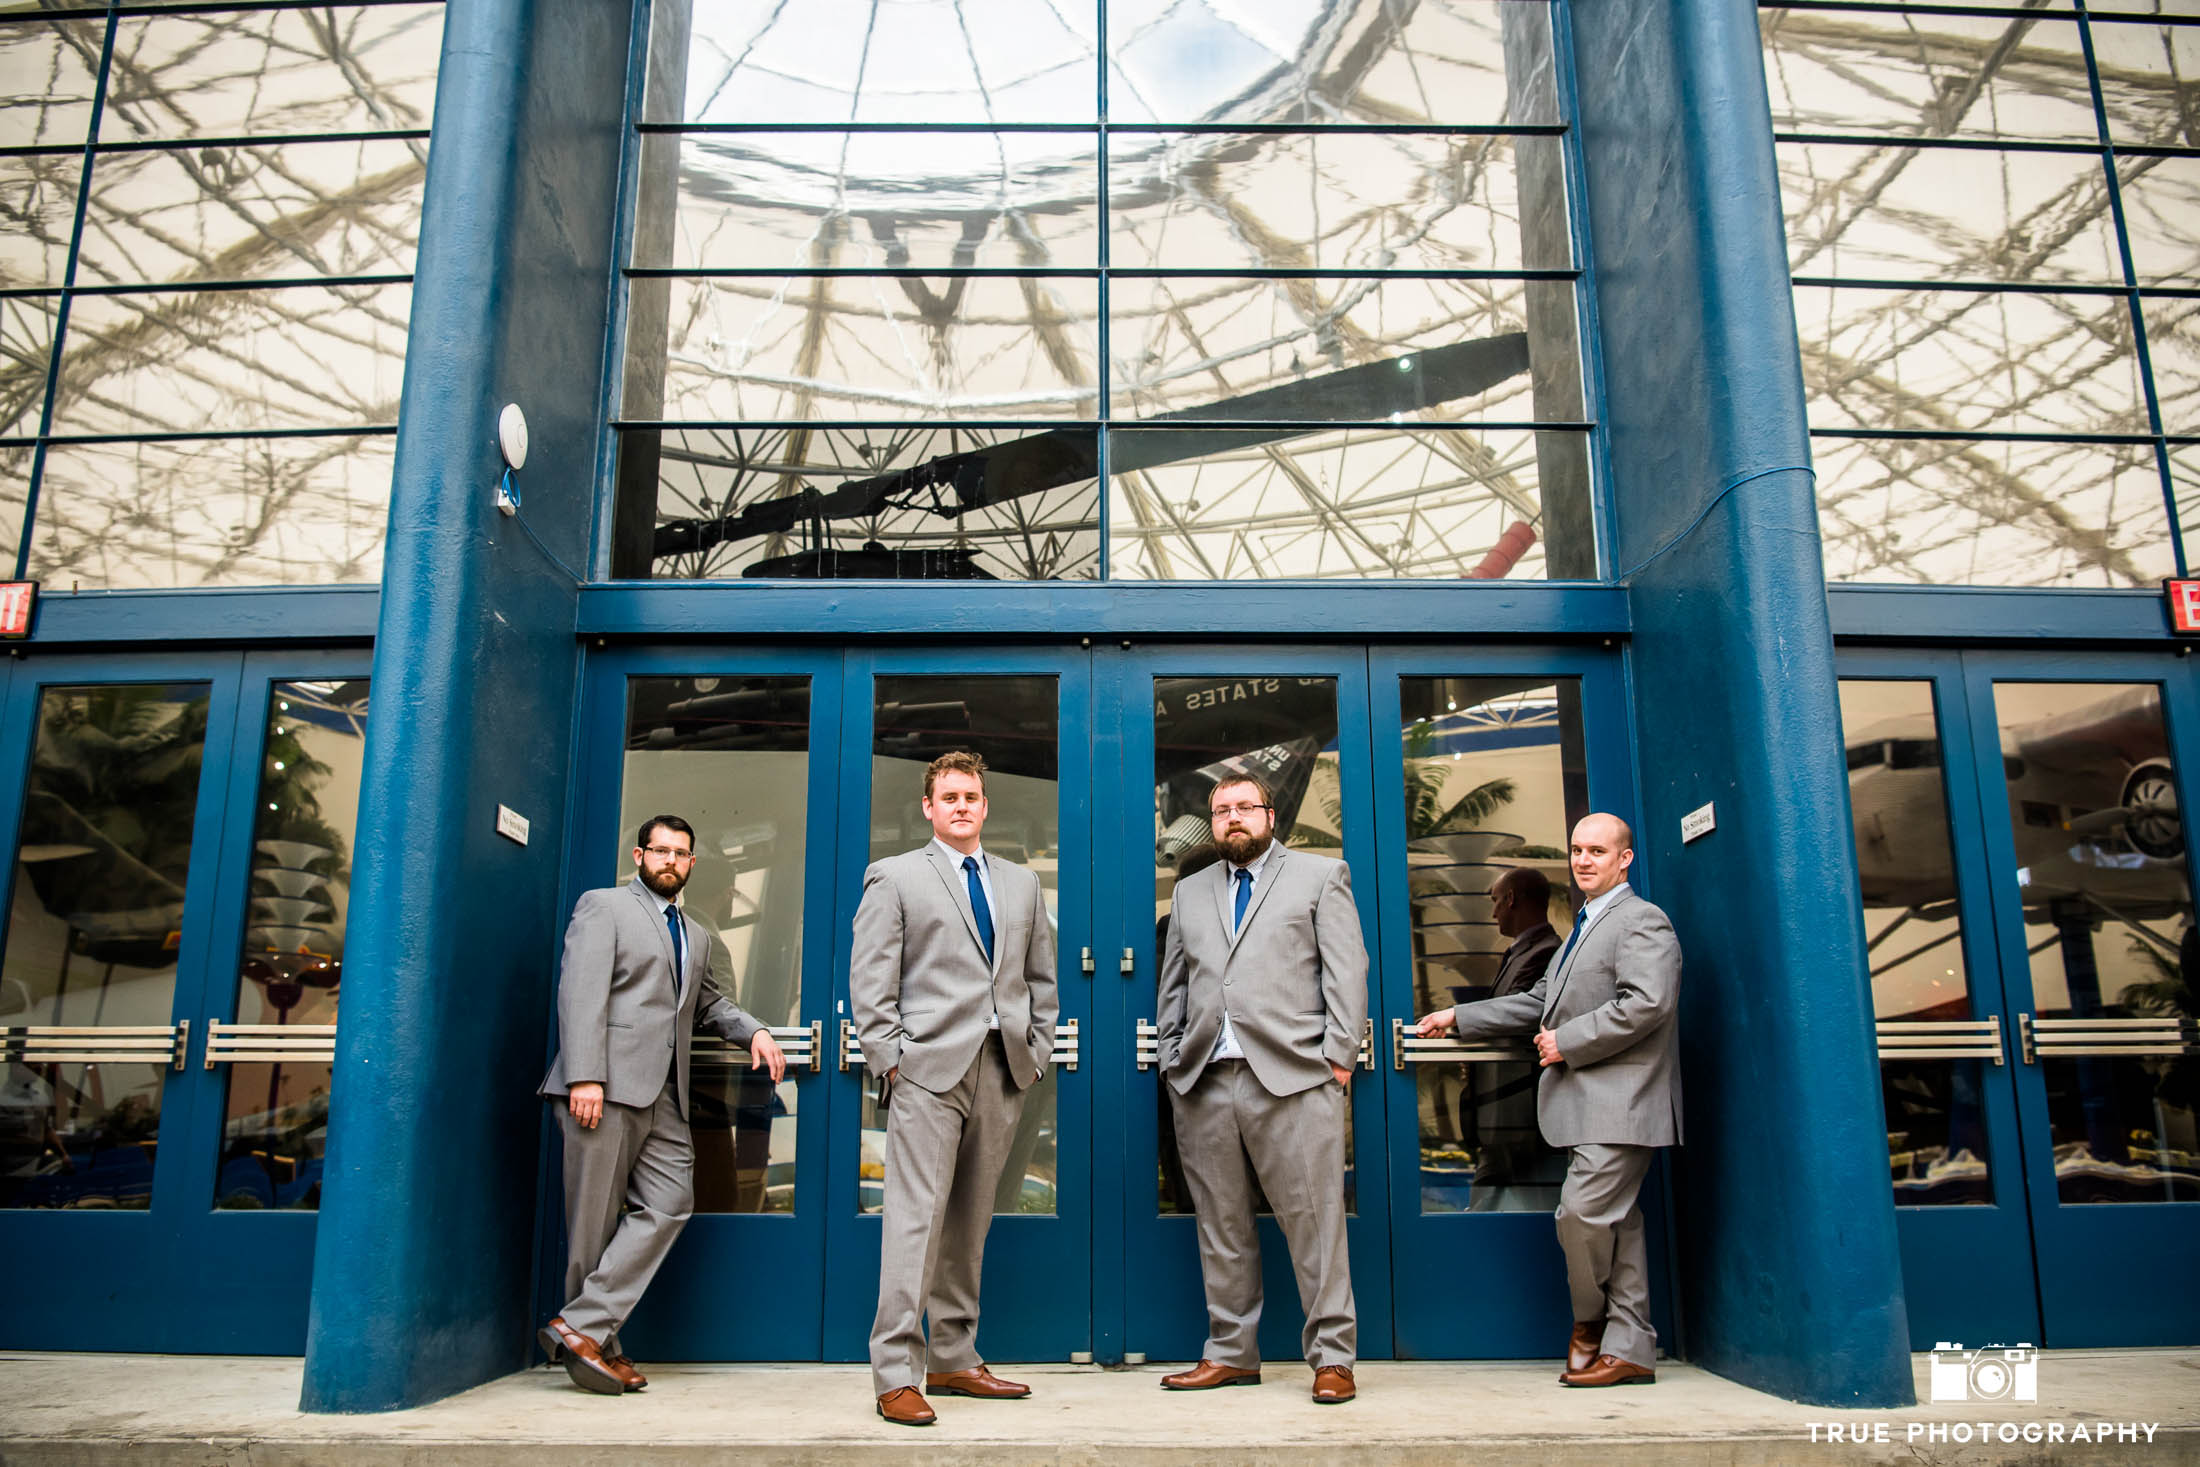 Groom and Groomsmen stand in front of blue doors at San Diego Air and Space Museum